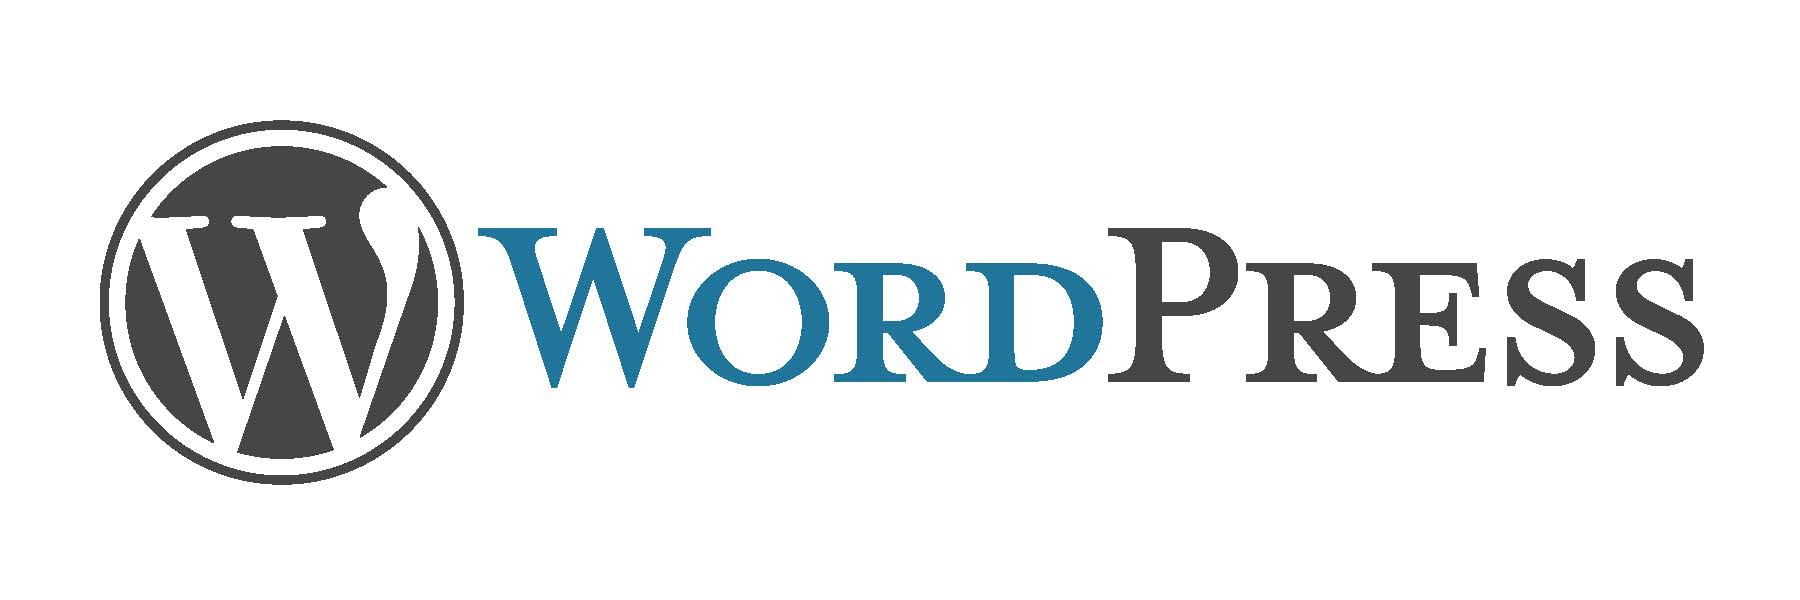 Become a WordPress Pro – A Guide With Everything You Need to Know